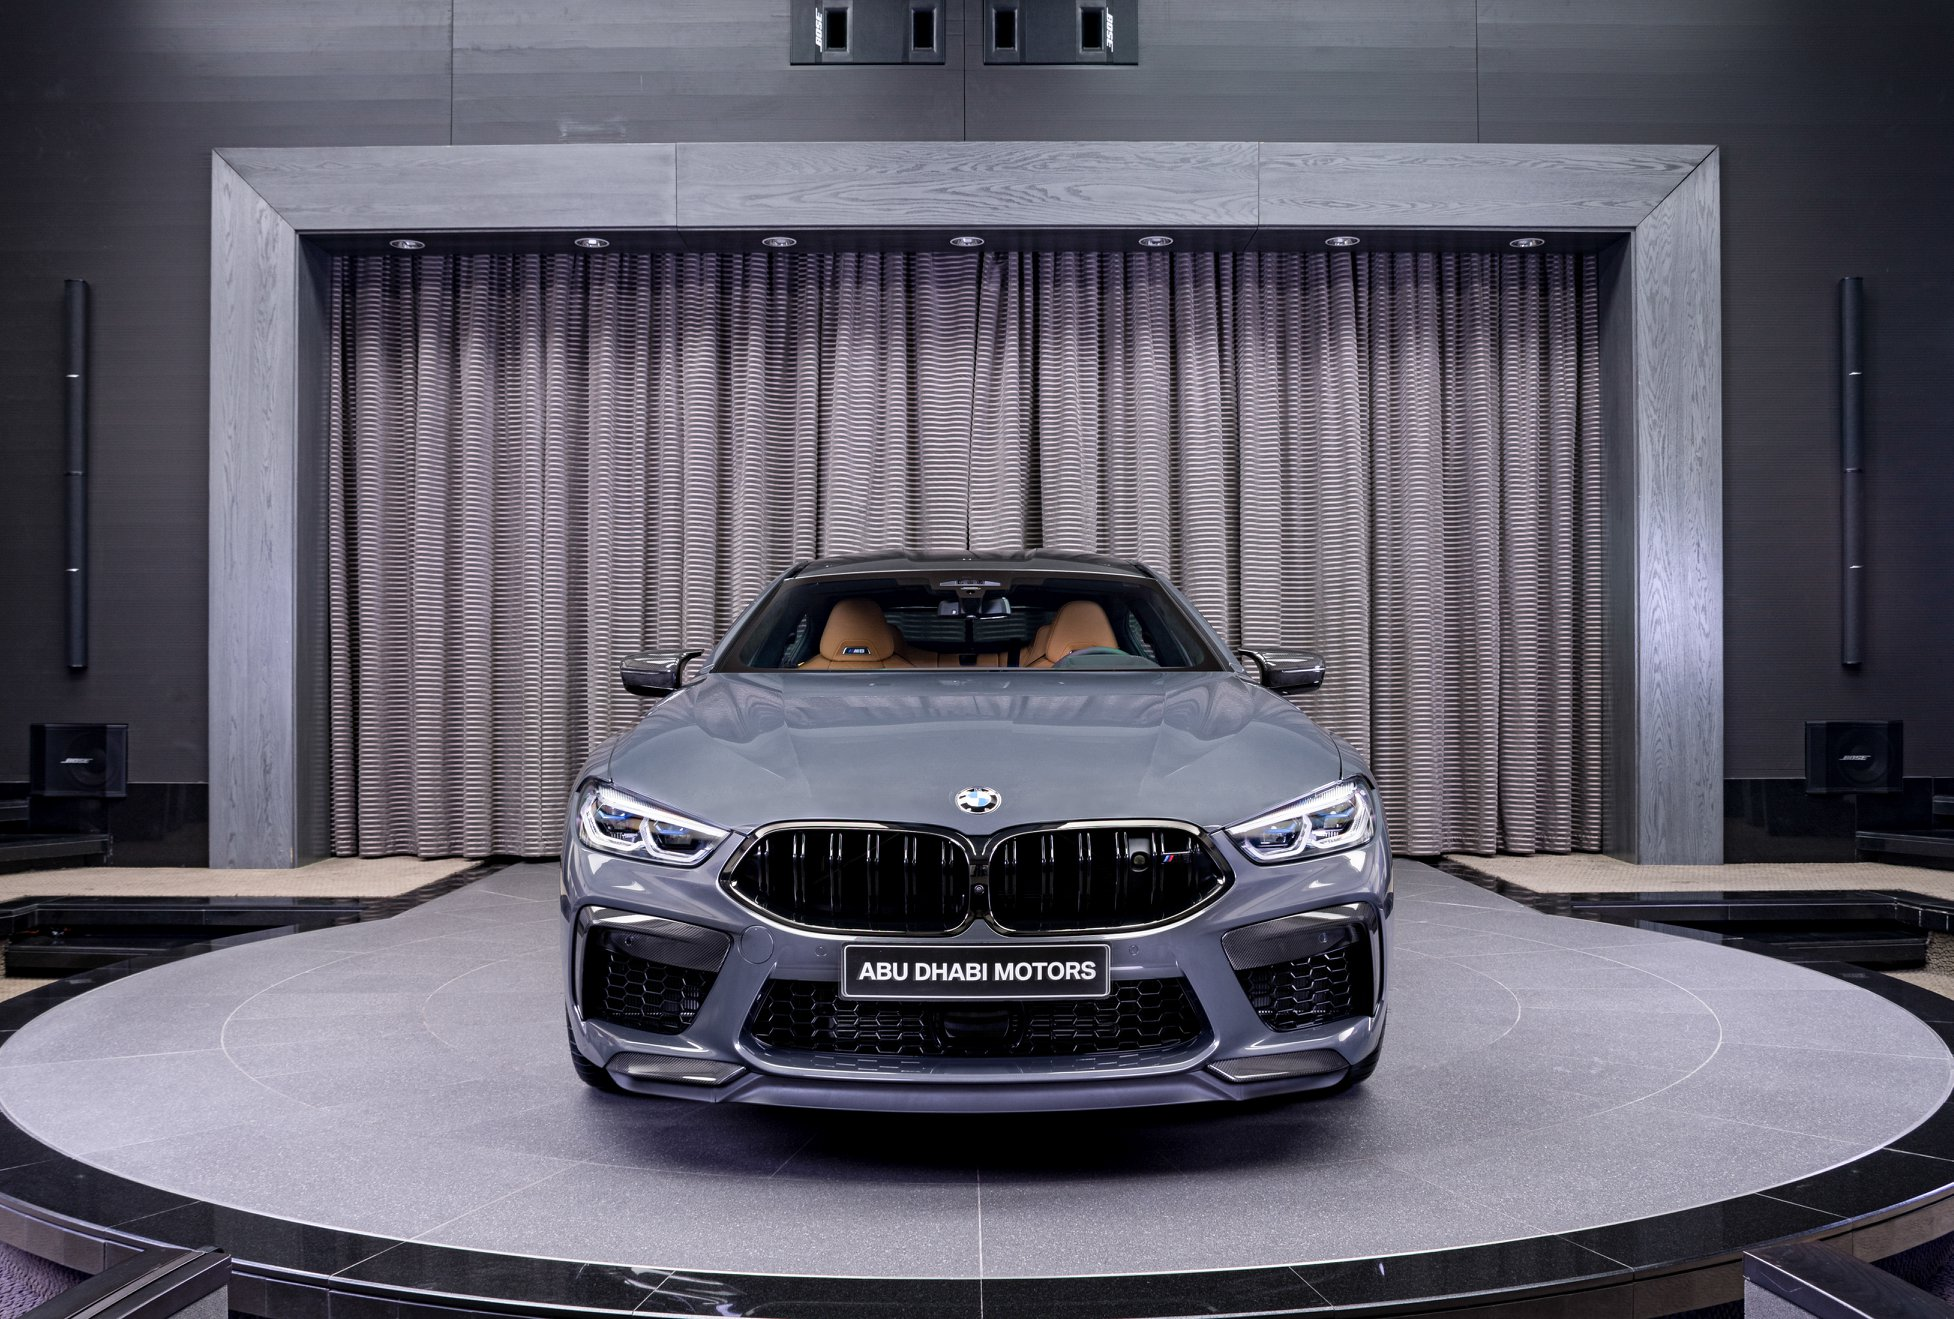 2020 BMW M8 Gran Coupé Competition Package in Brands Hatch Grey